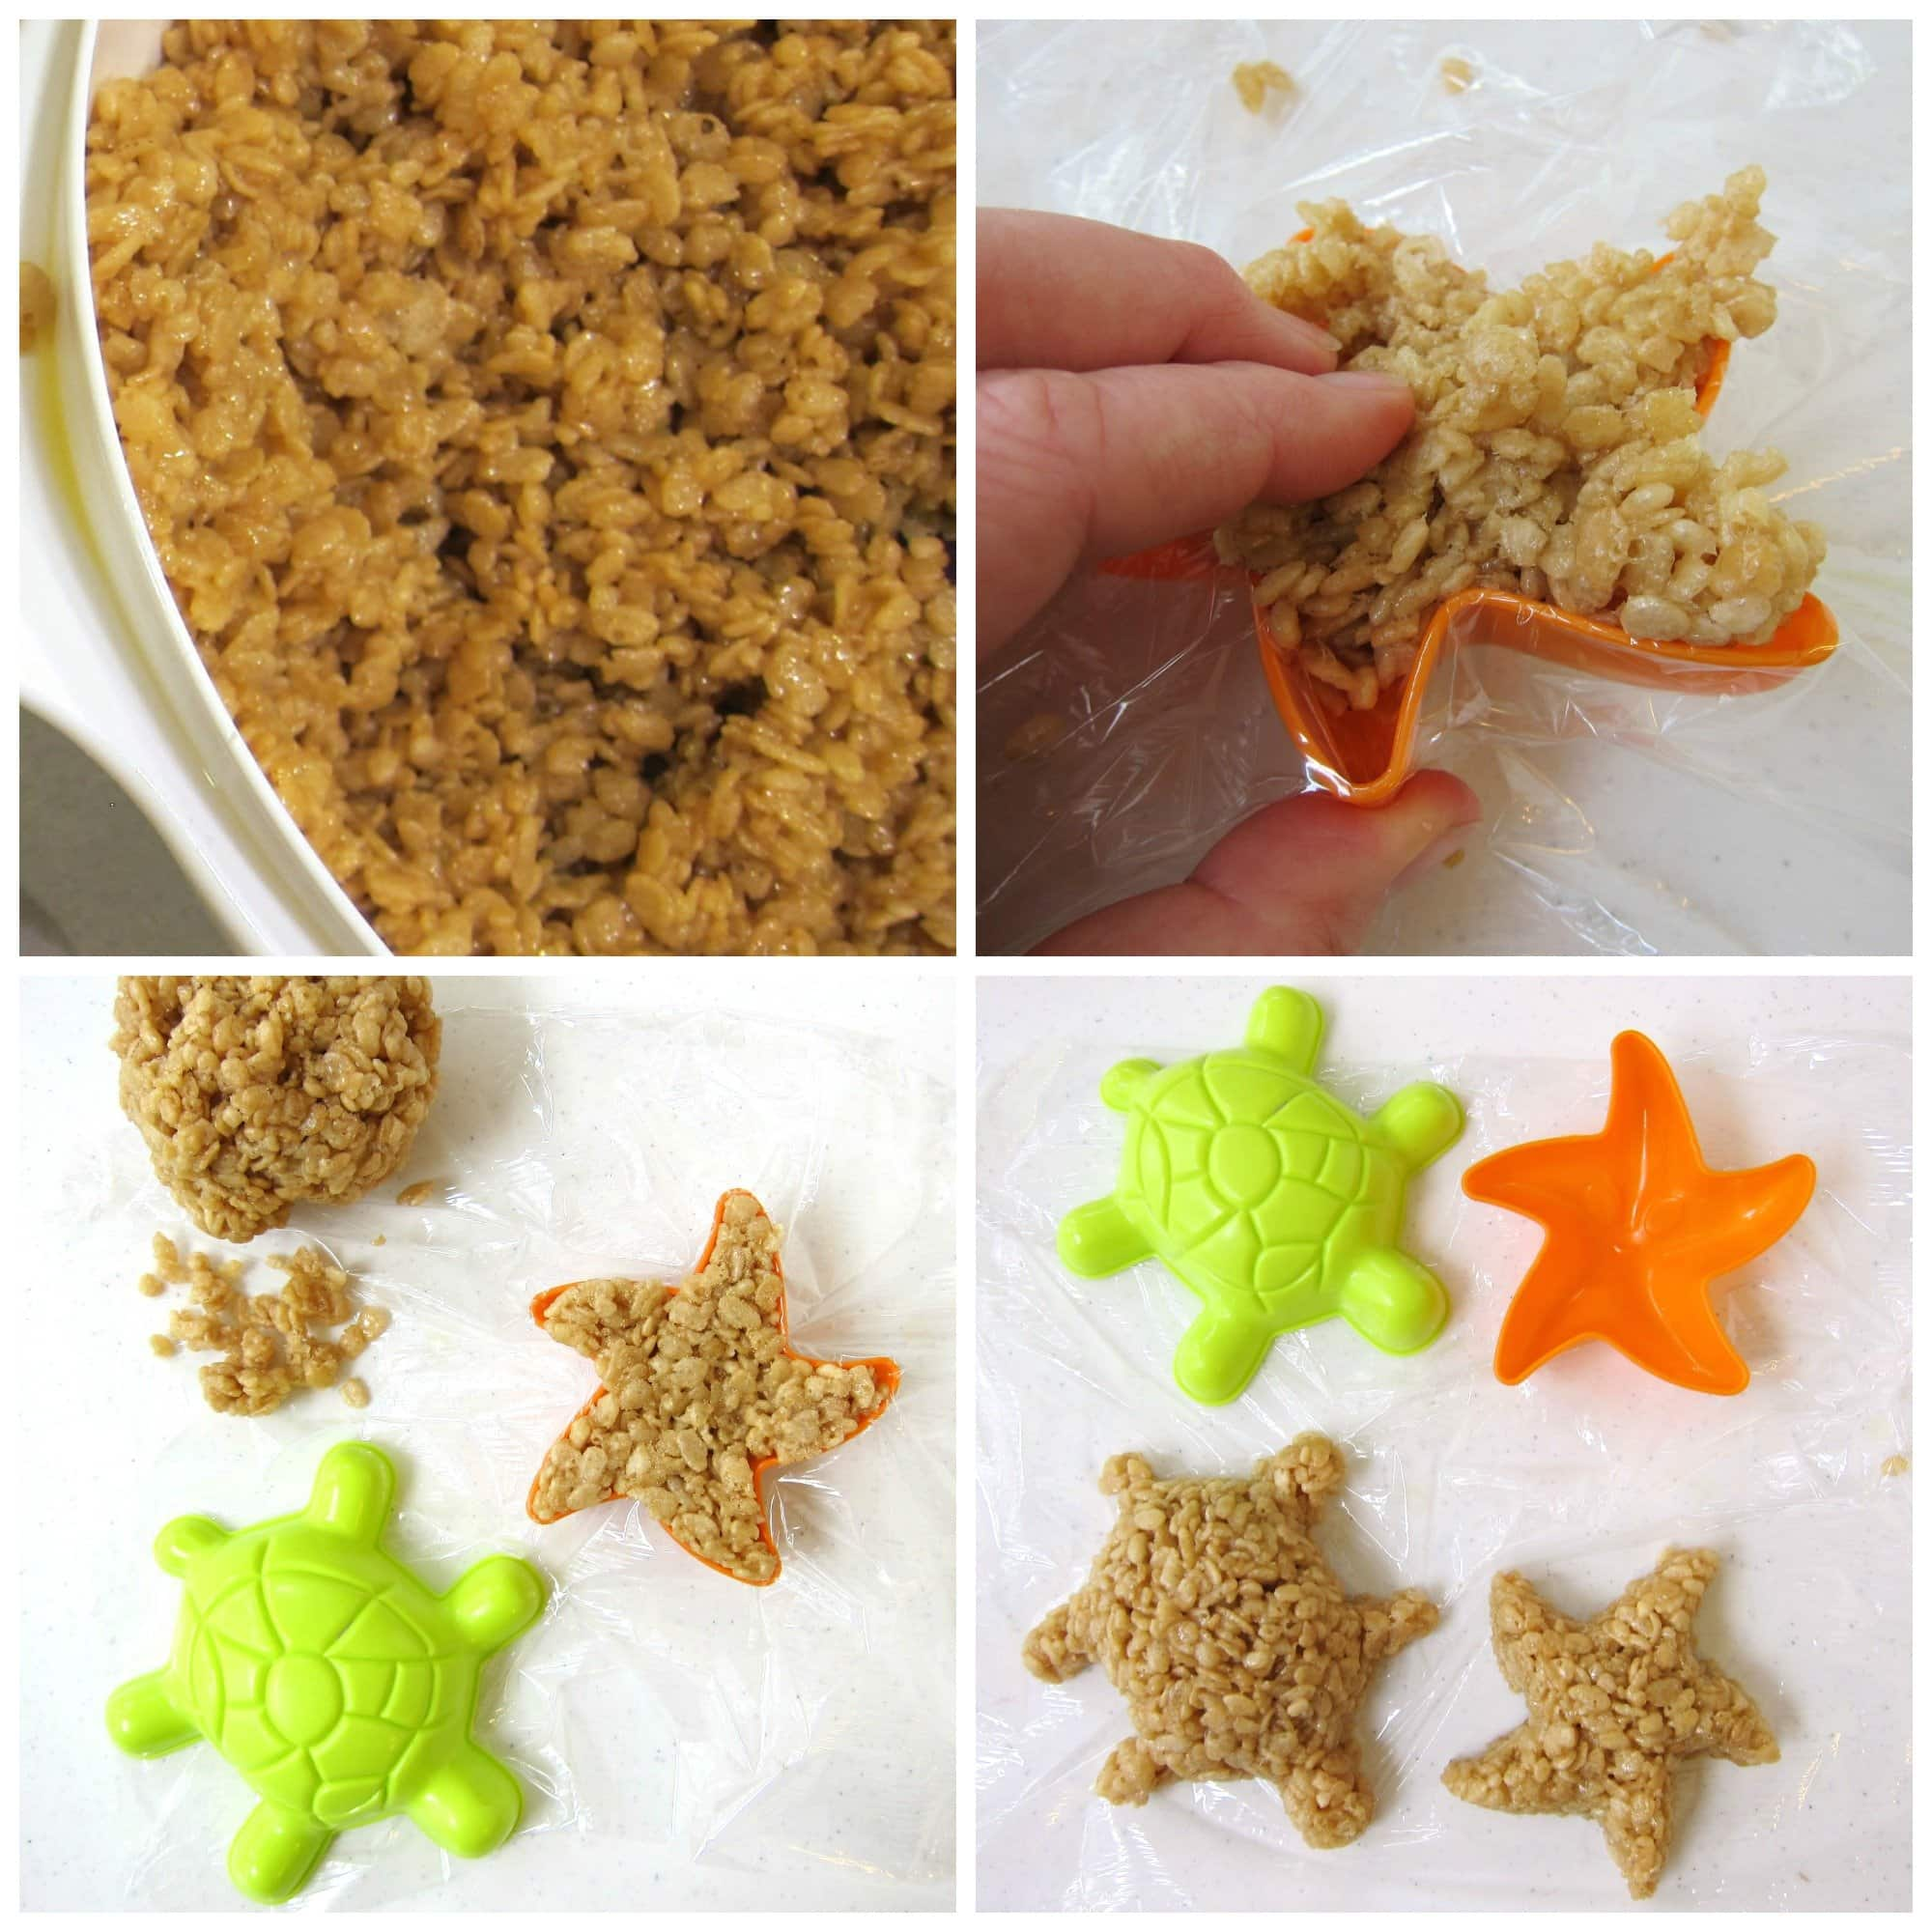 How to make caramel rice krispie treats using plastic sand molds in the shape of turtles and starfish.